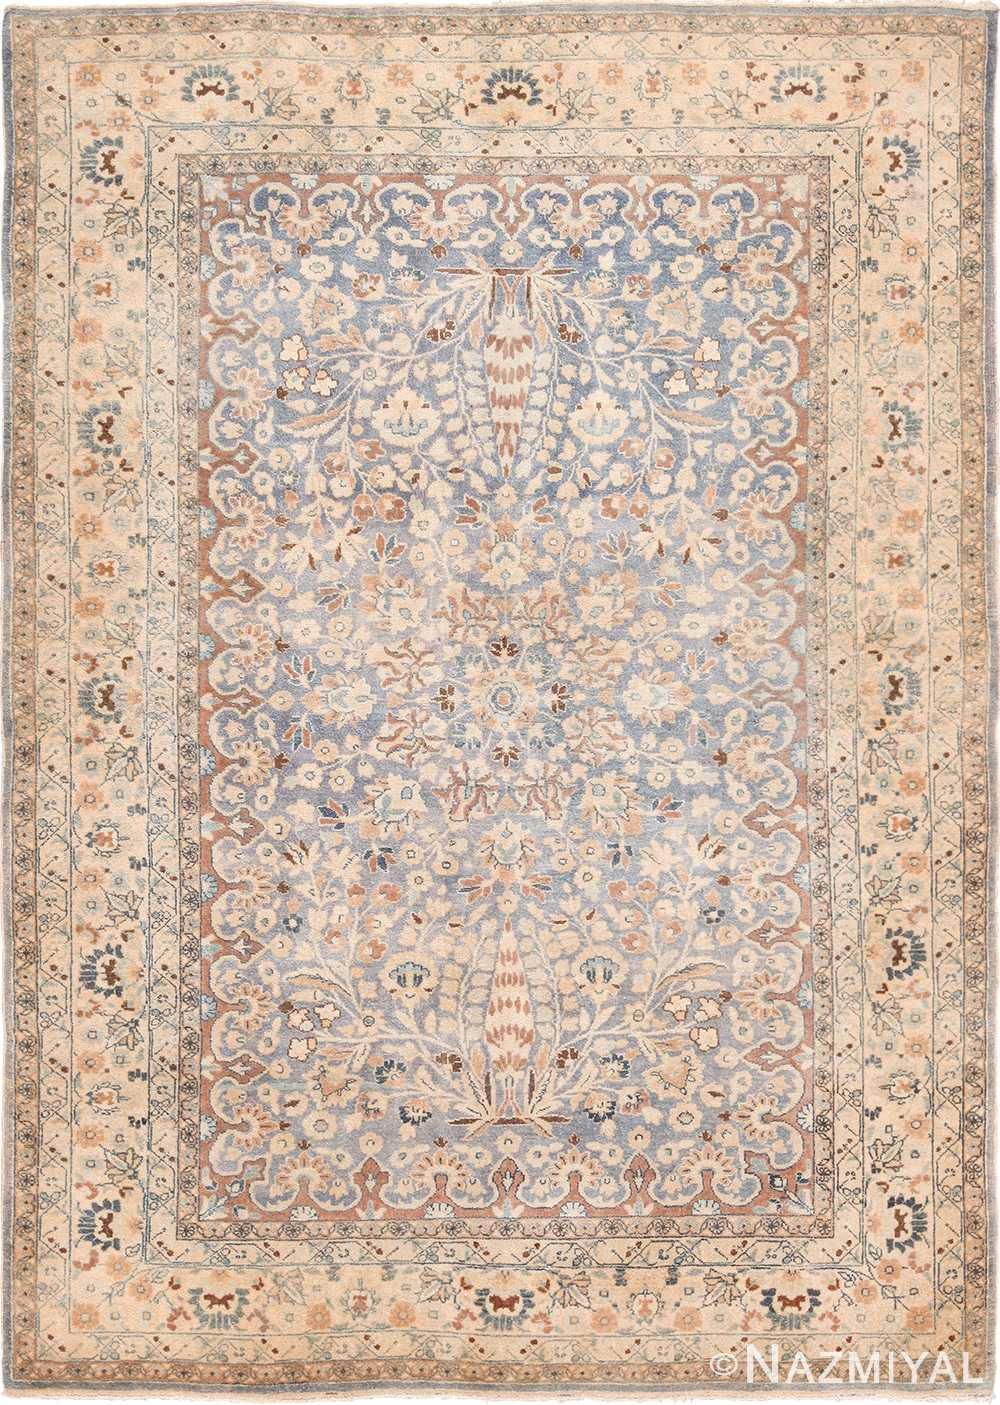 Light Blue Background Antique Persian Khorassan Rug 49597 by Nazmiyal